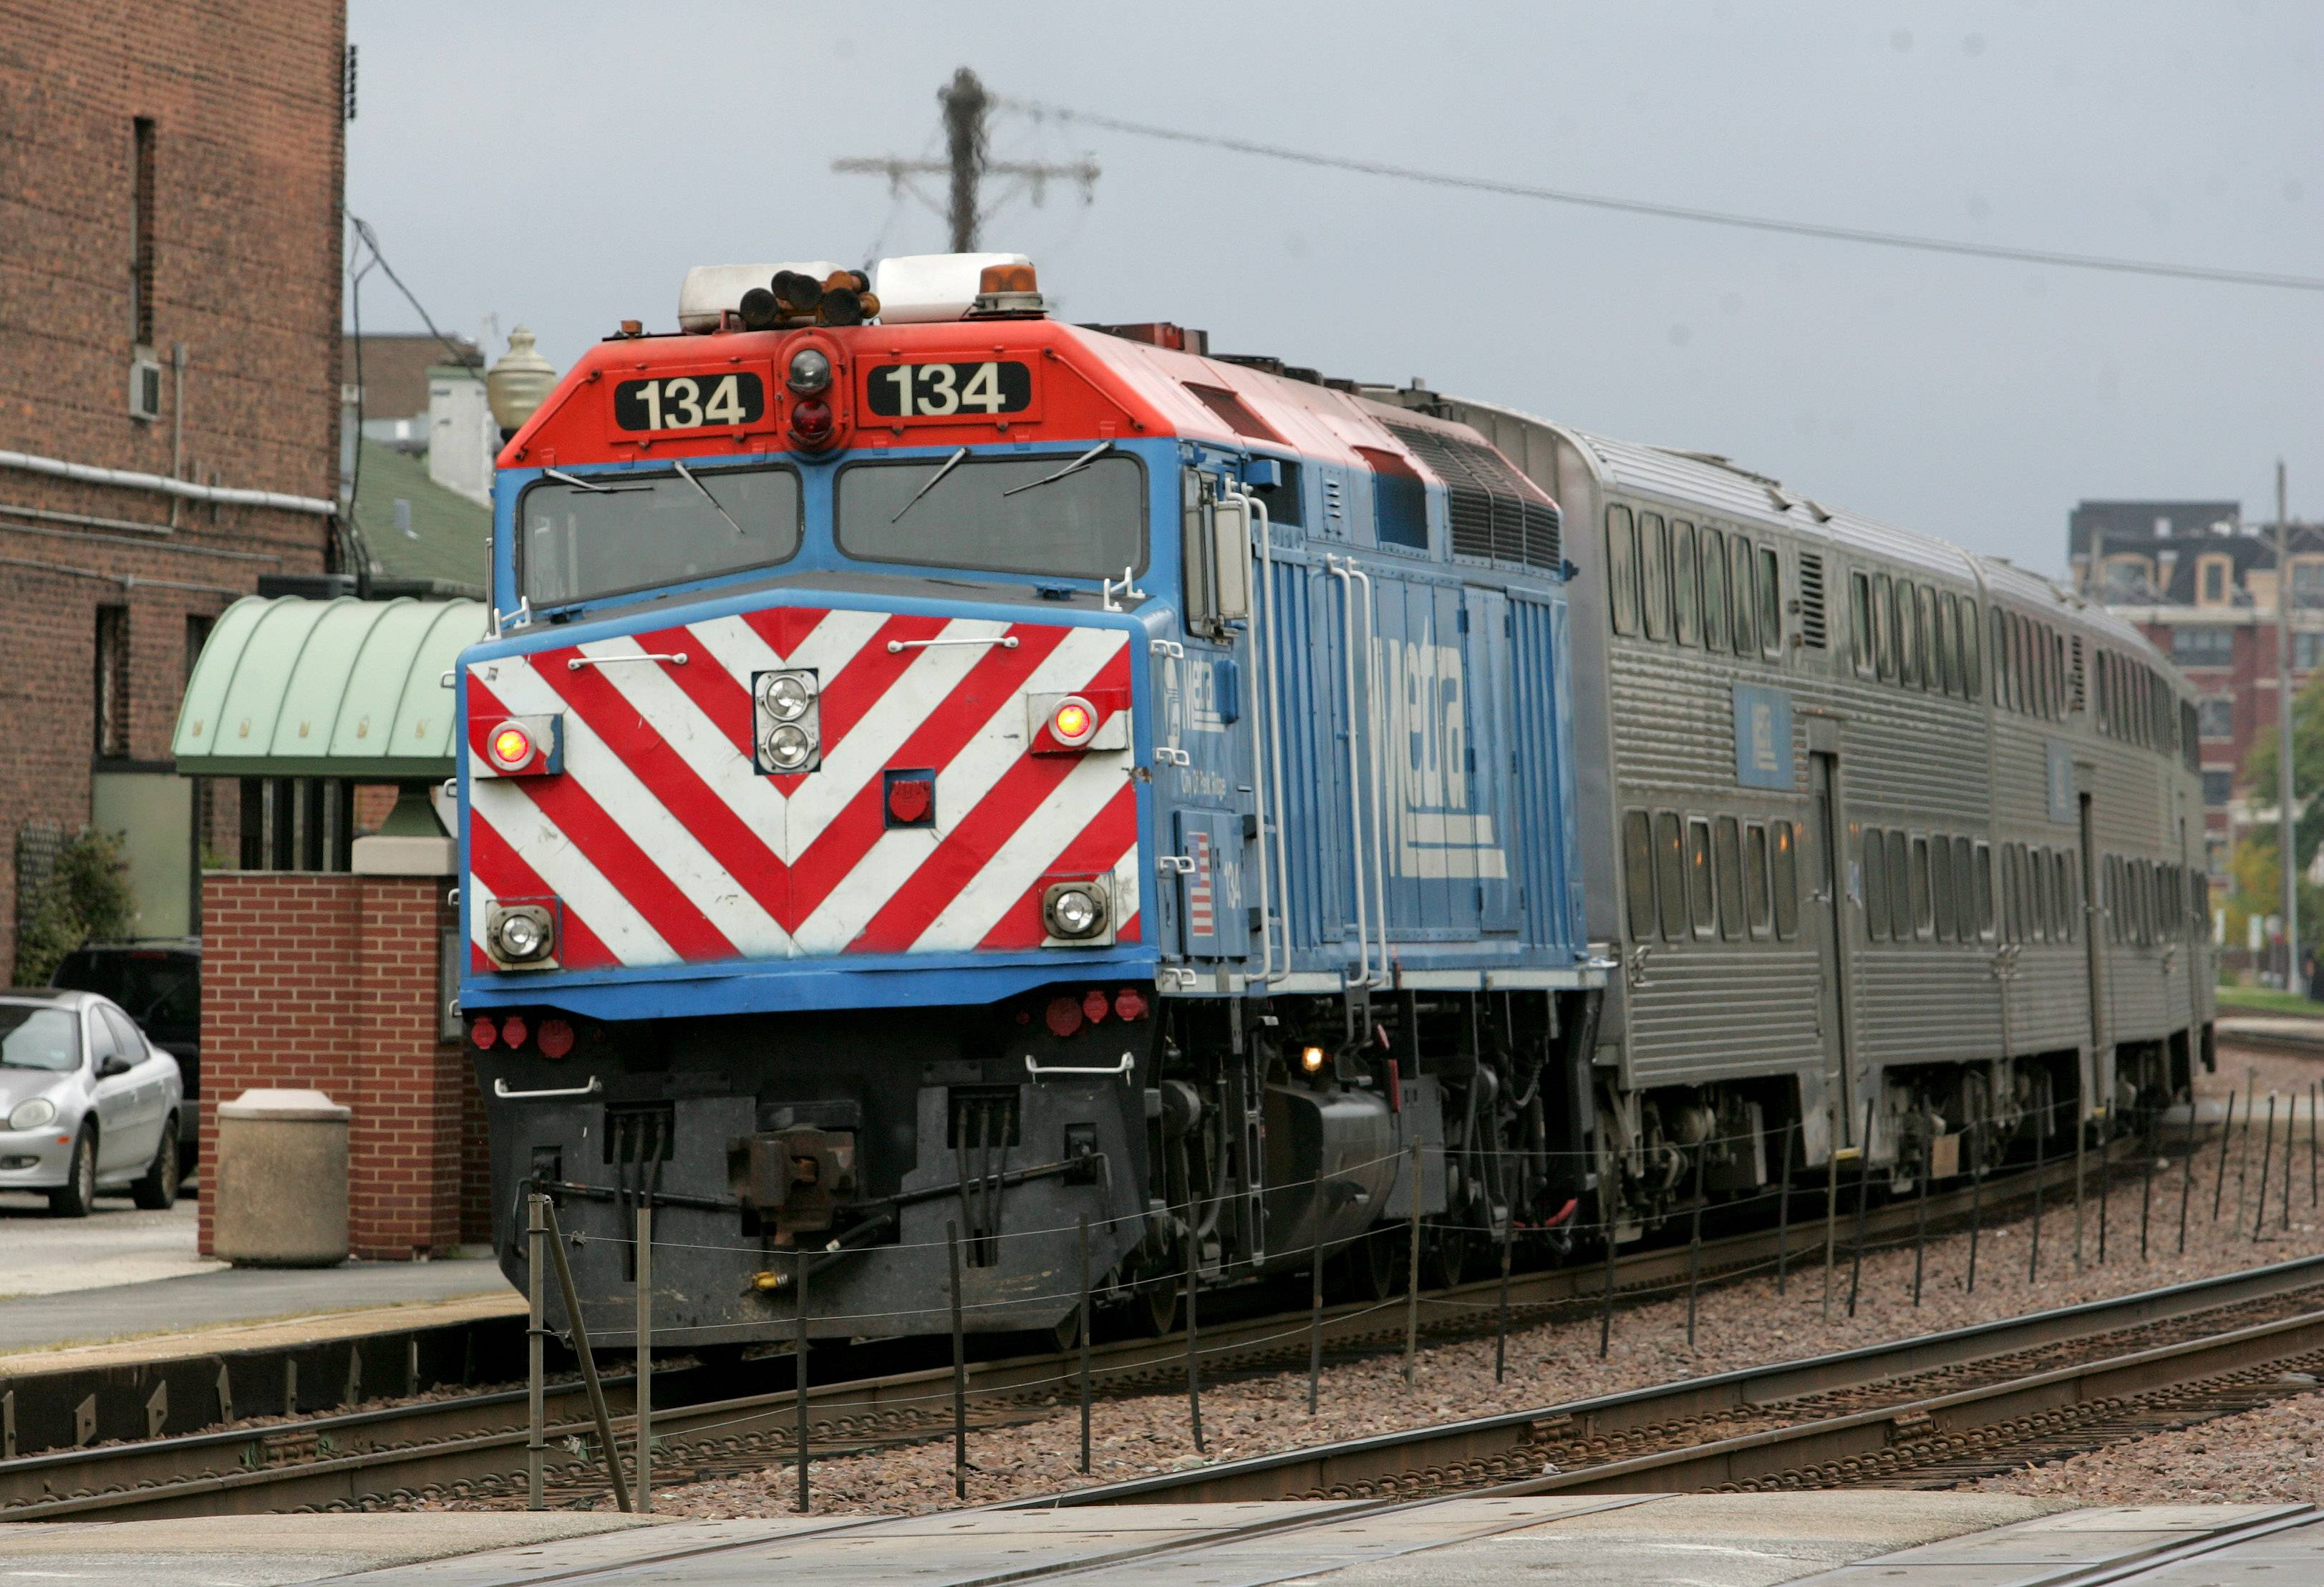 Metra is under federal investigation for safety questions.